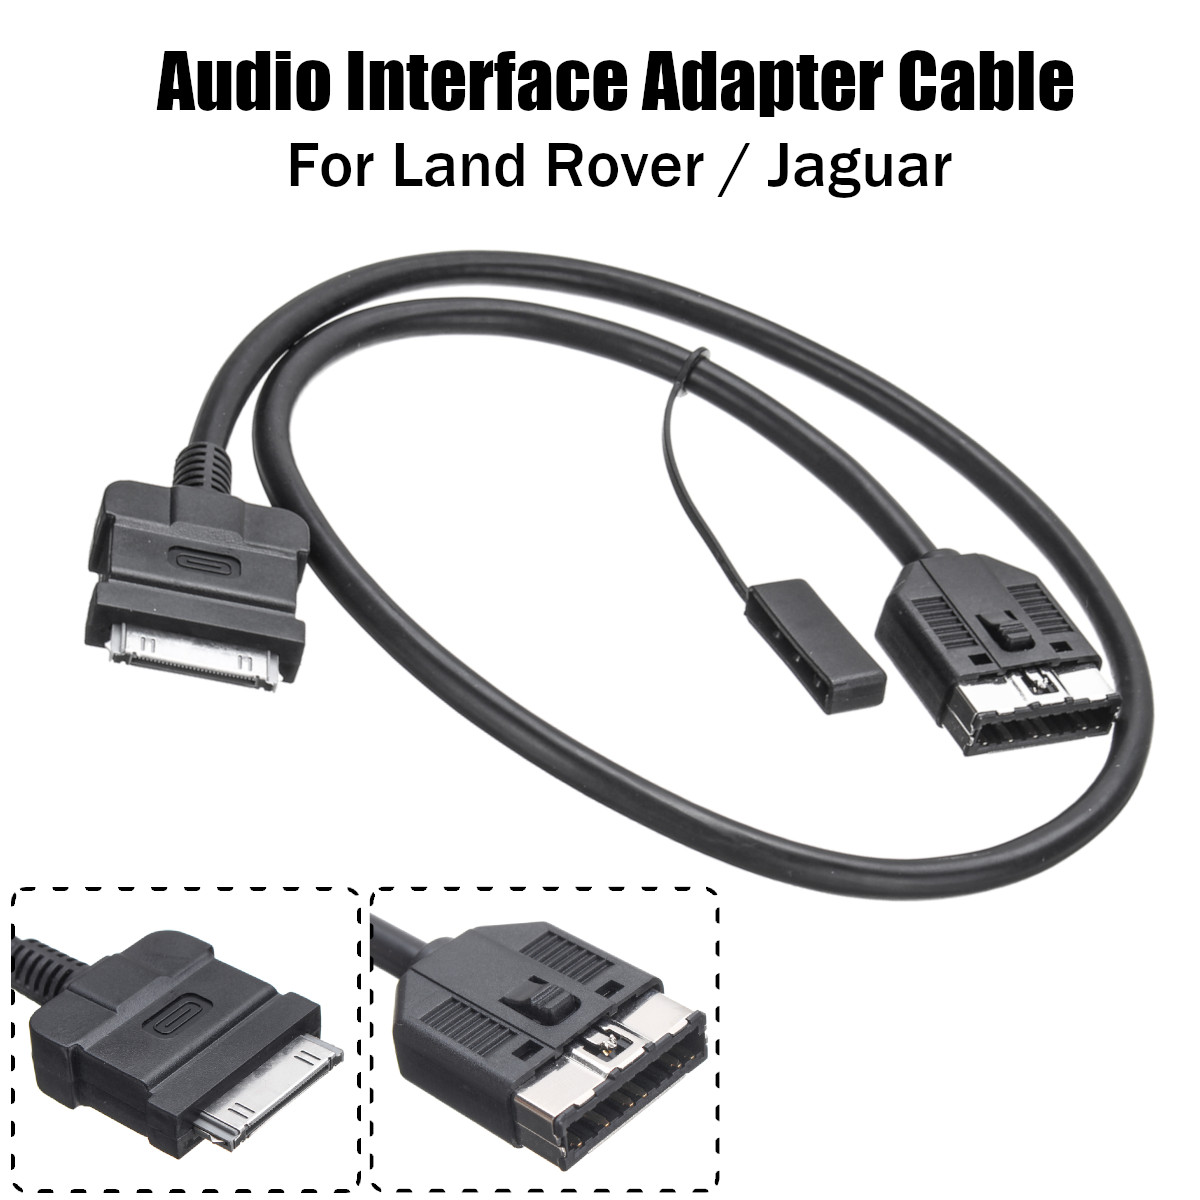 Music Audio Interface Adapter Cable for Range Rover Sport 2010-2011 Connect to iPhone iPod iPad